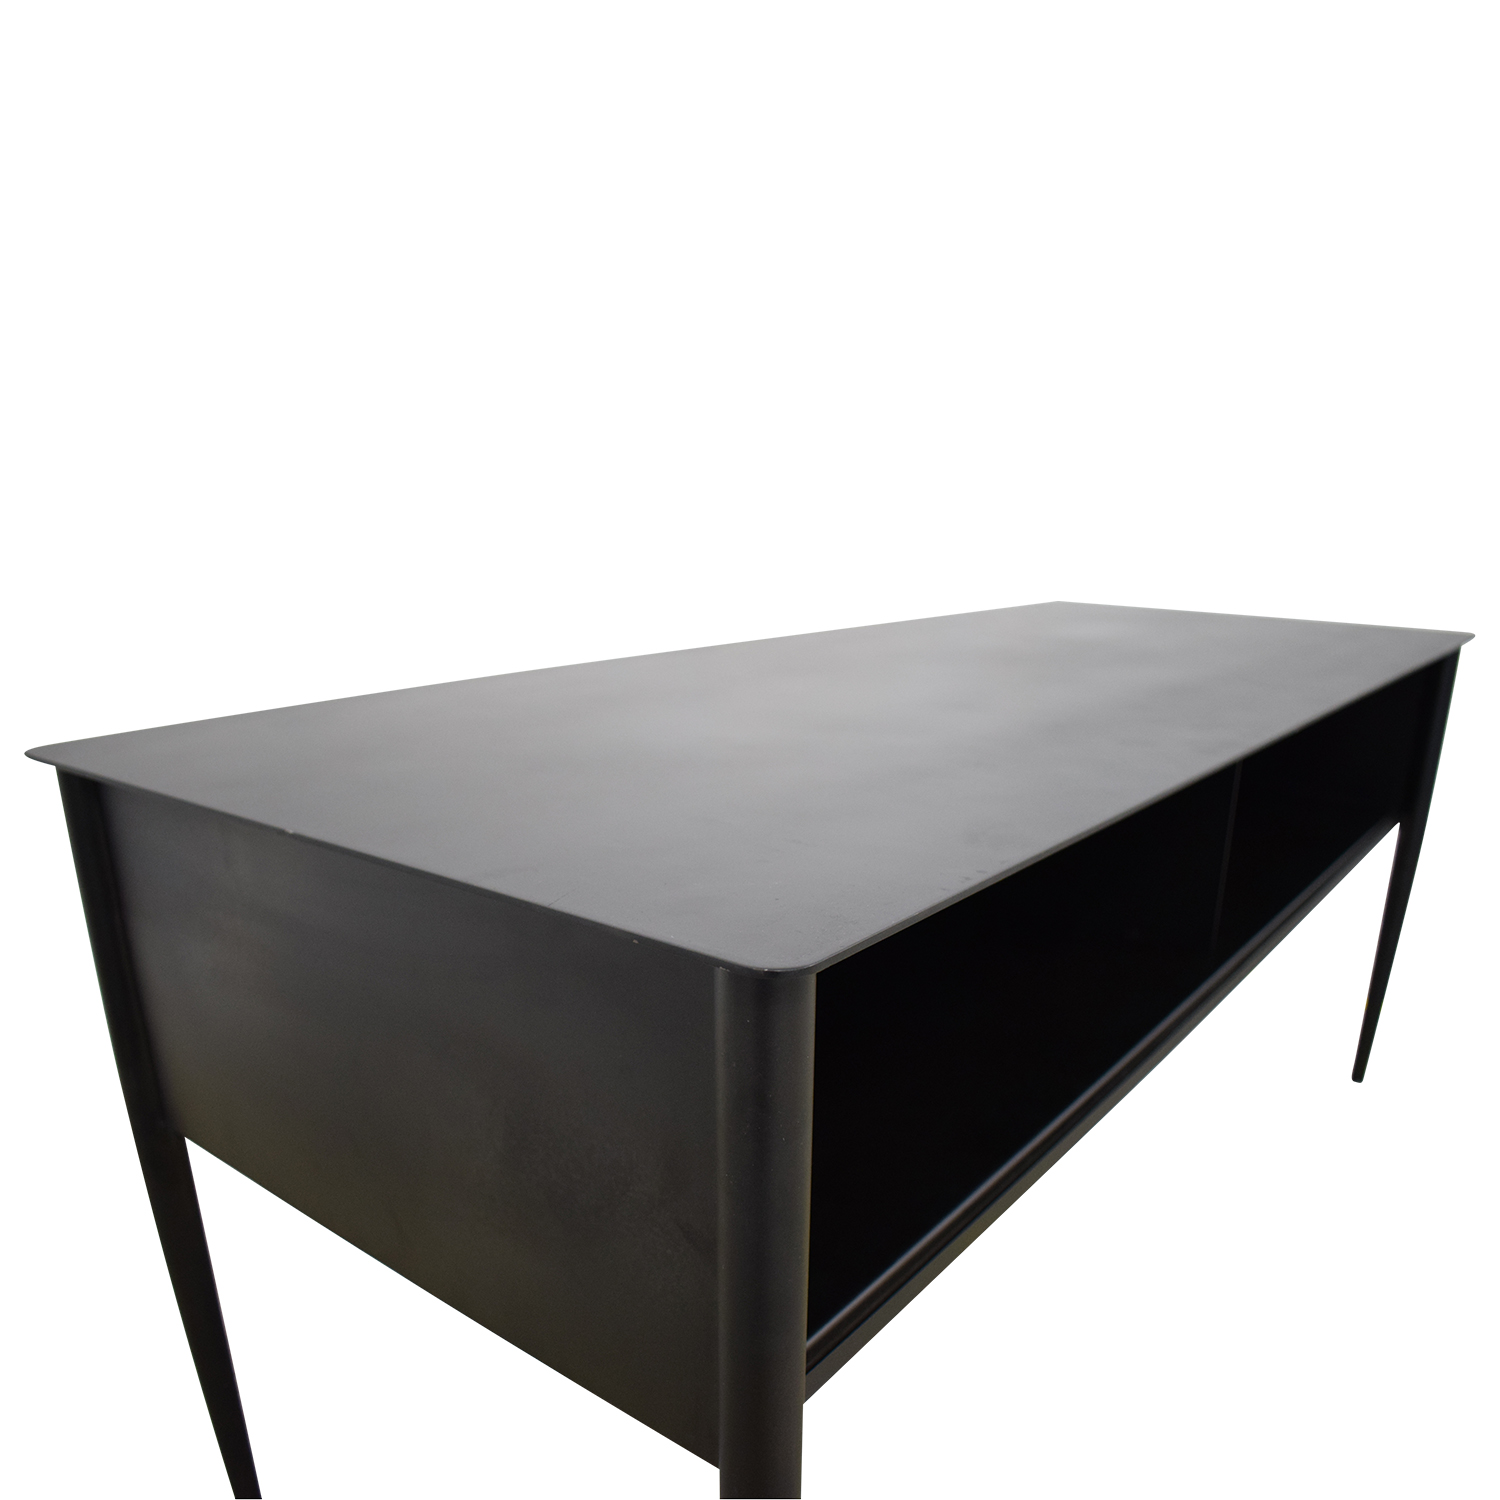 West Elm West Elm Metalwork Hot Rolled Steel Media Console dimensions